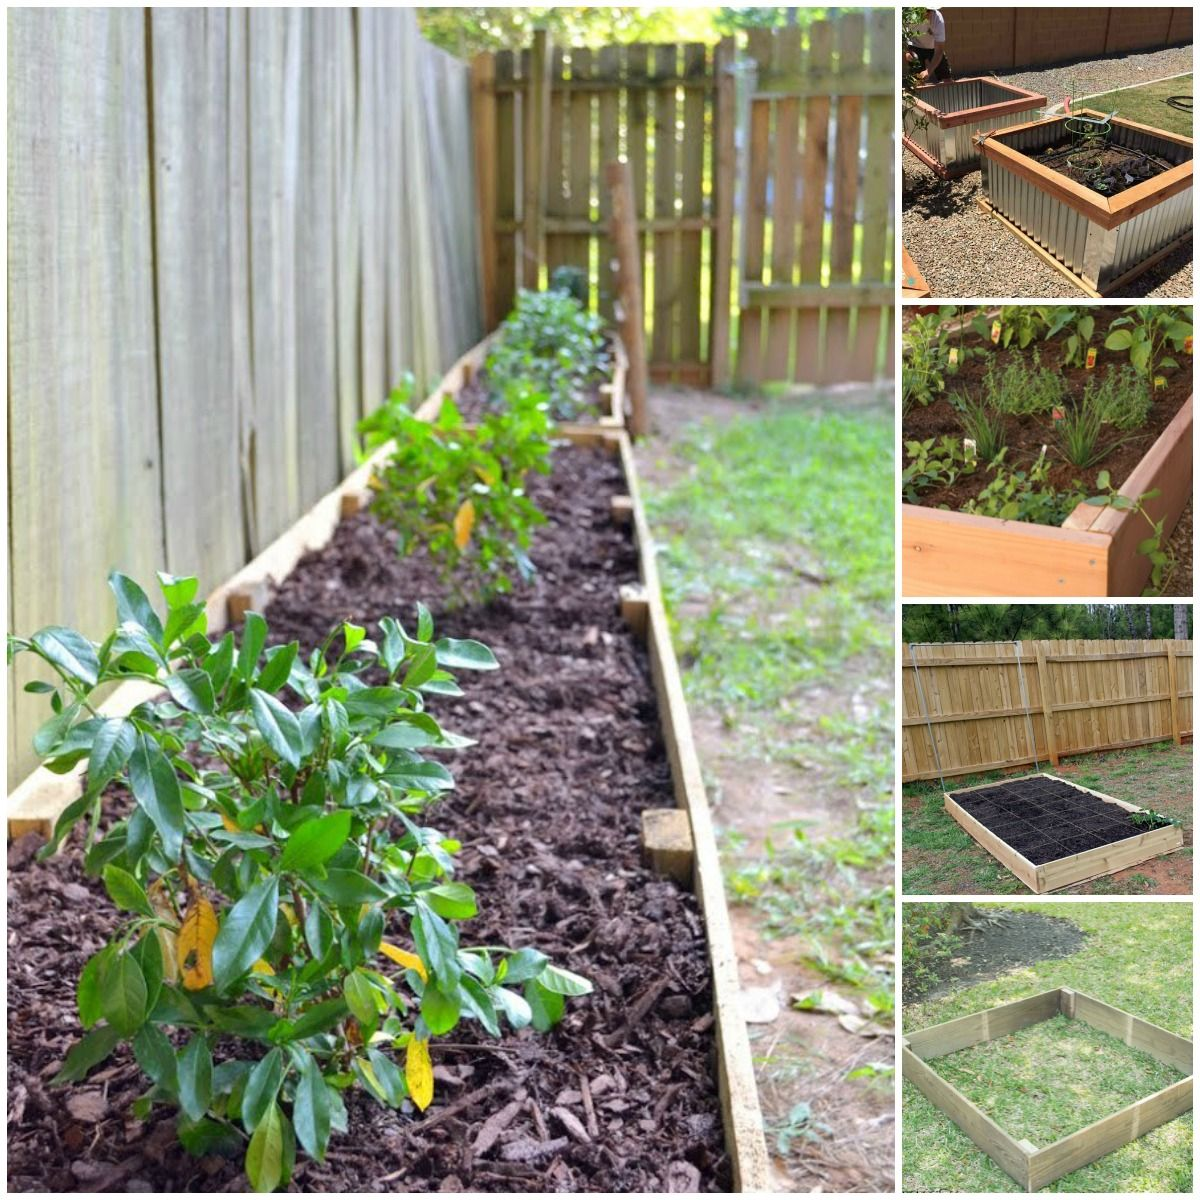 Easy Landscaping Ideas You Can Try: 20 Brilliant Raised Garden Bed Ideas You Can Make In A